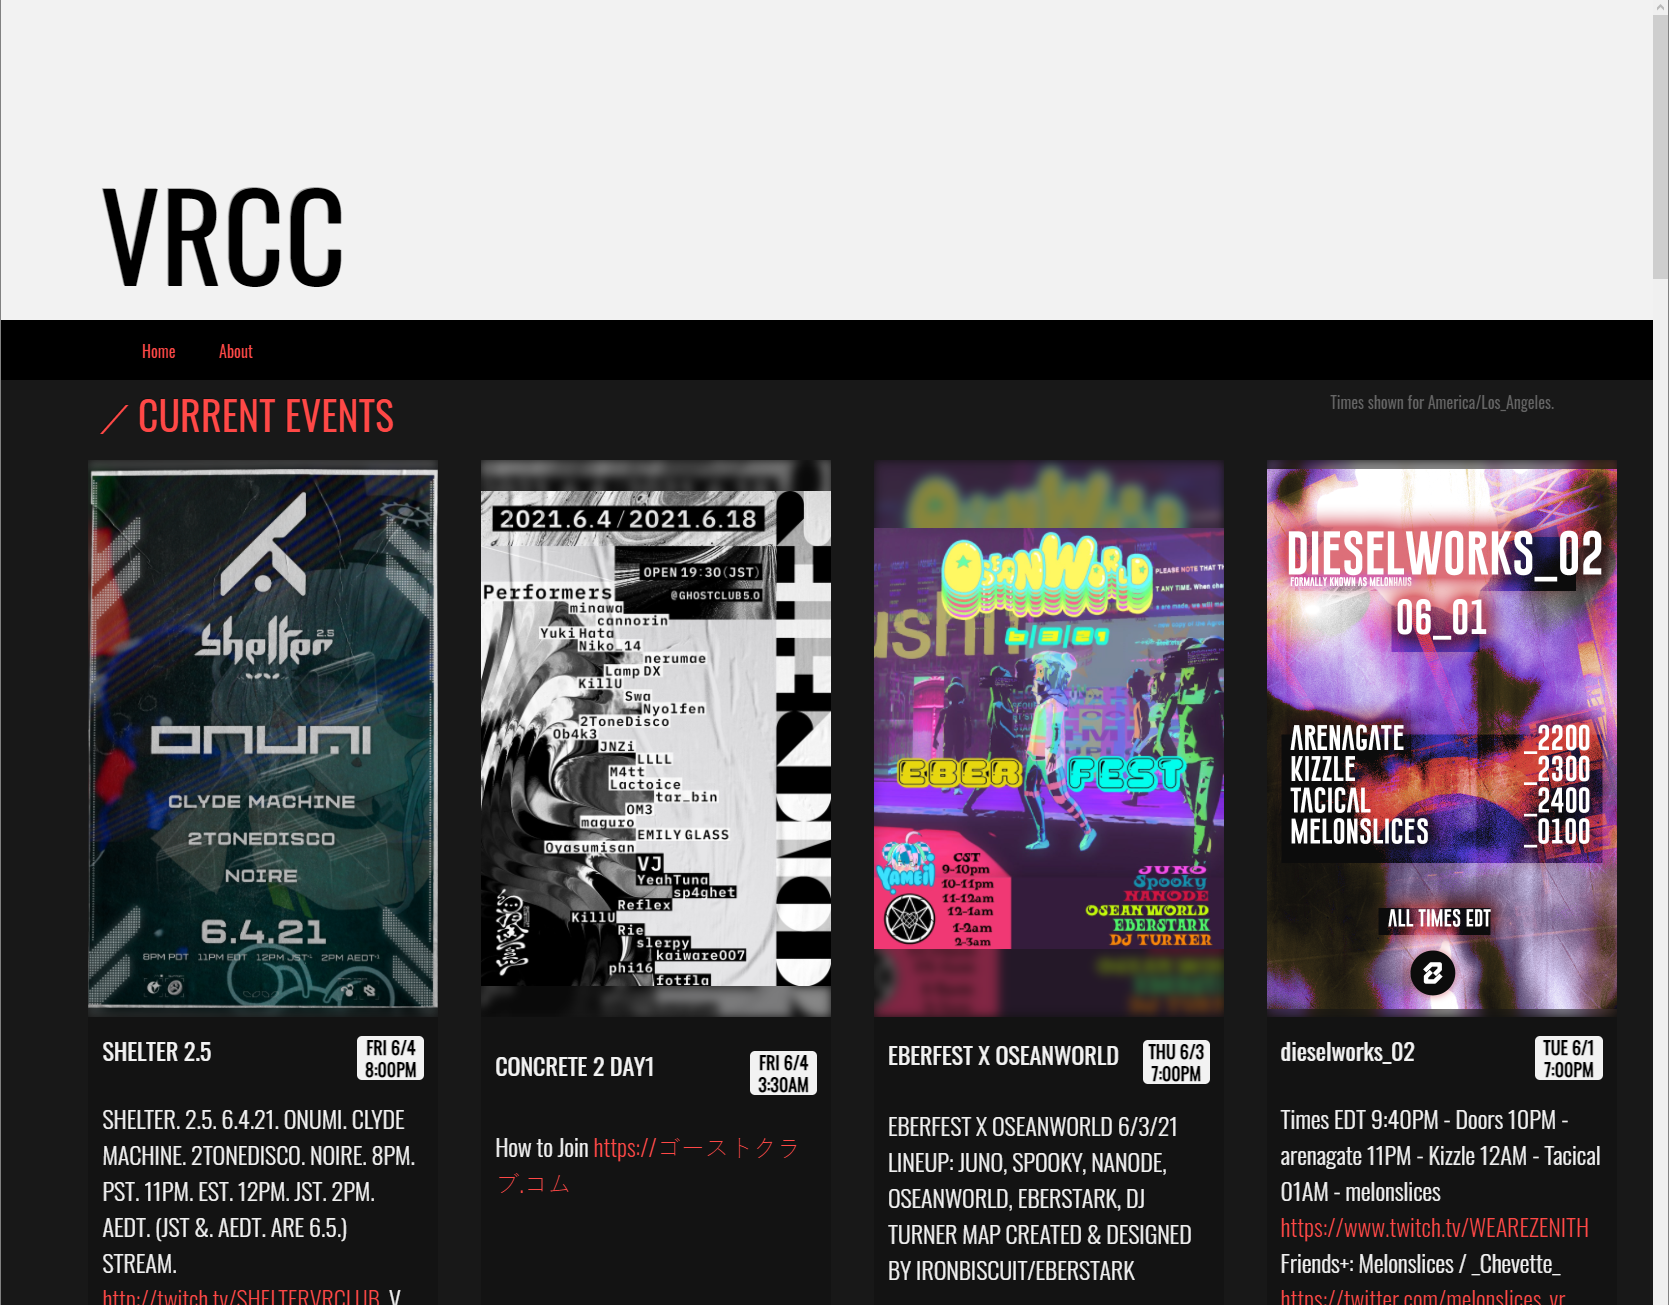 A handful of events gracing the VRCC homepage.